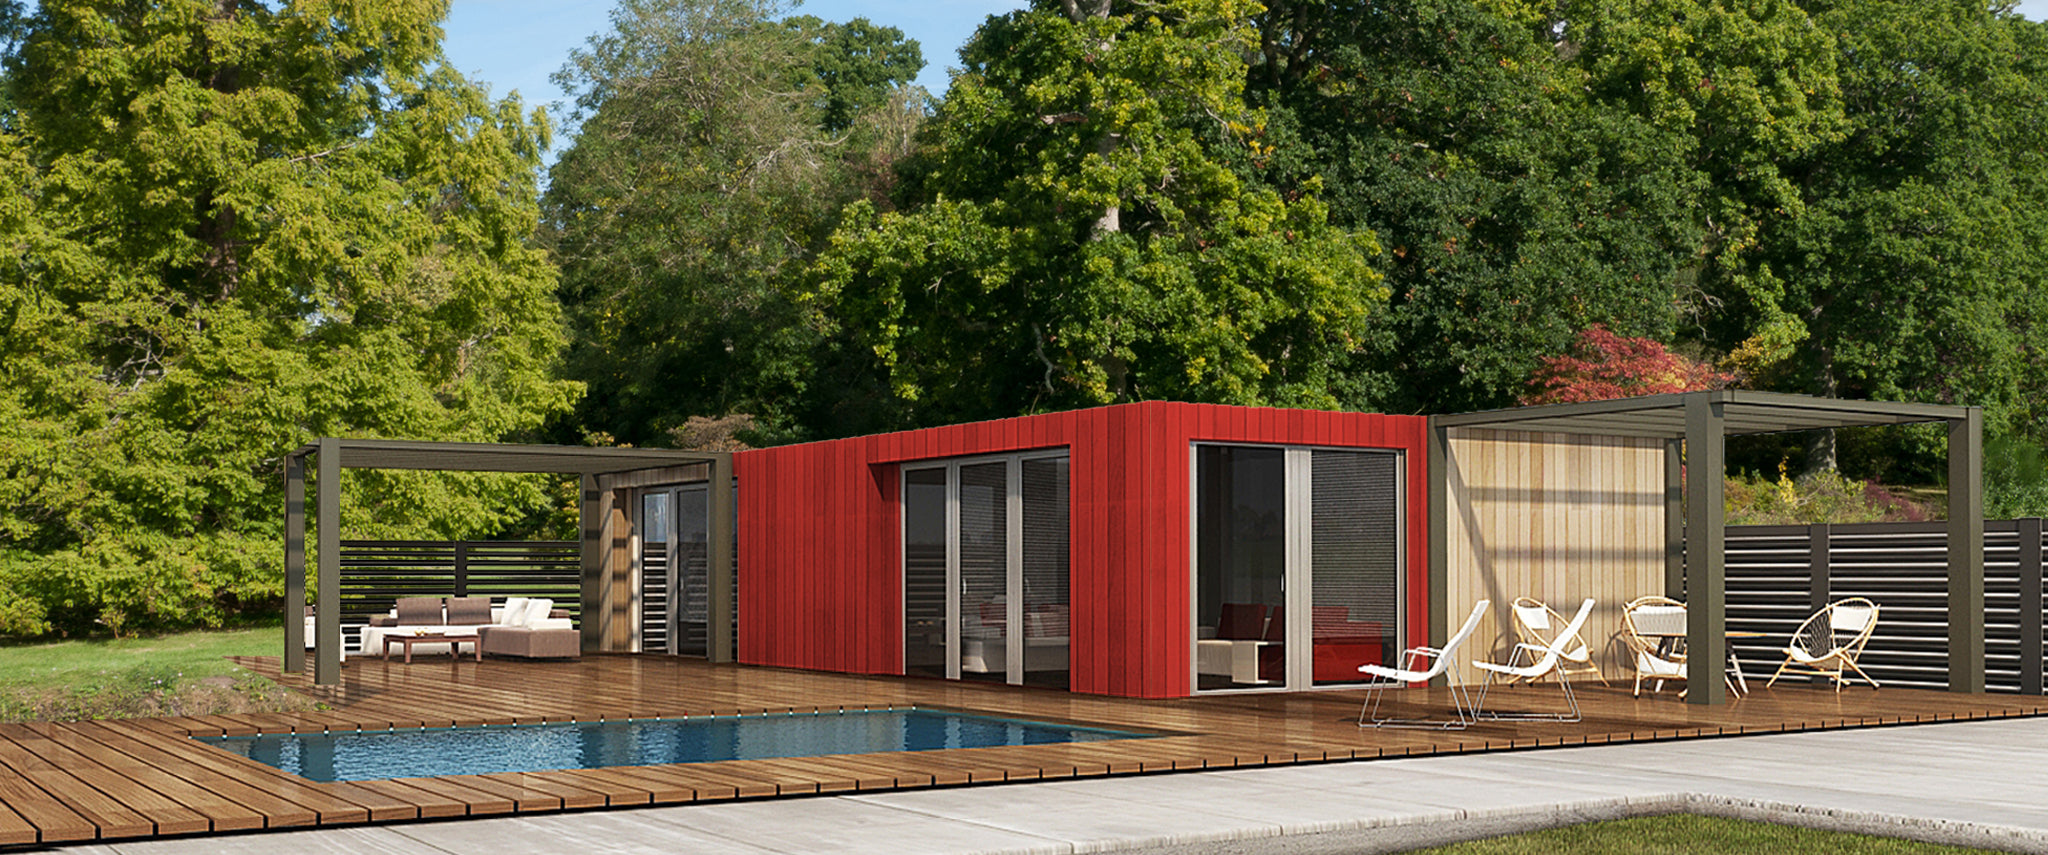 Bauhu Lifestyle modular homes and home kits